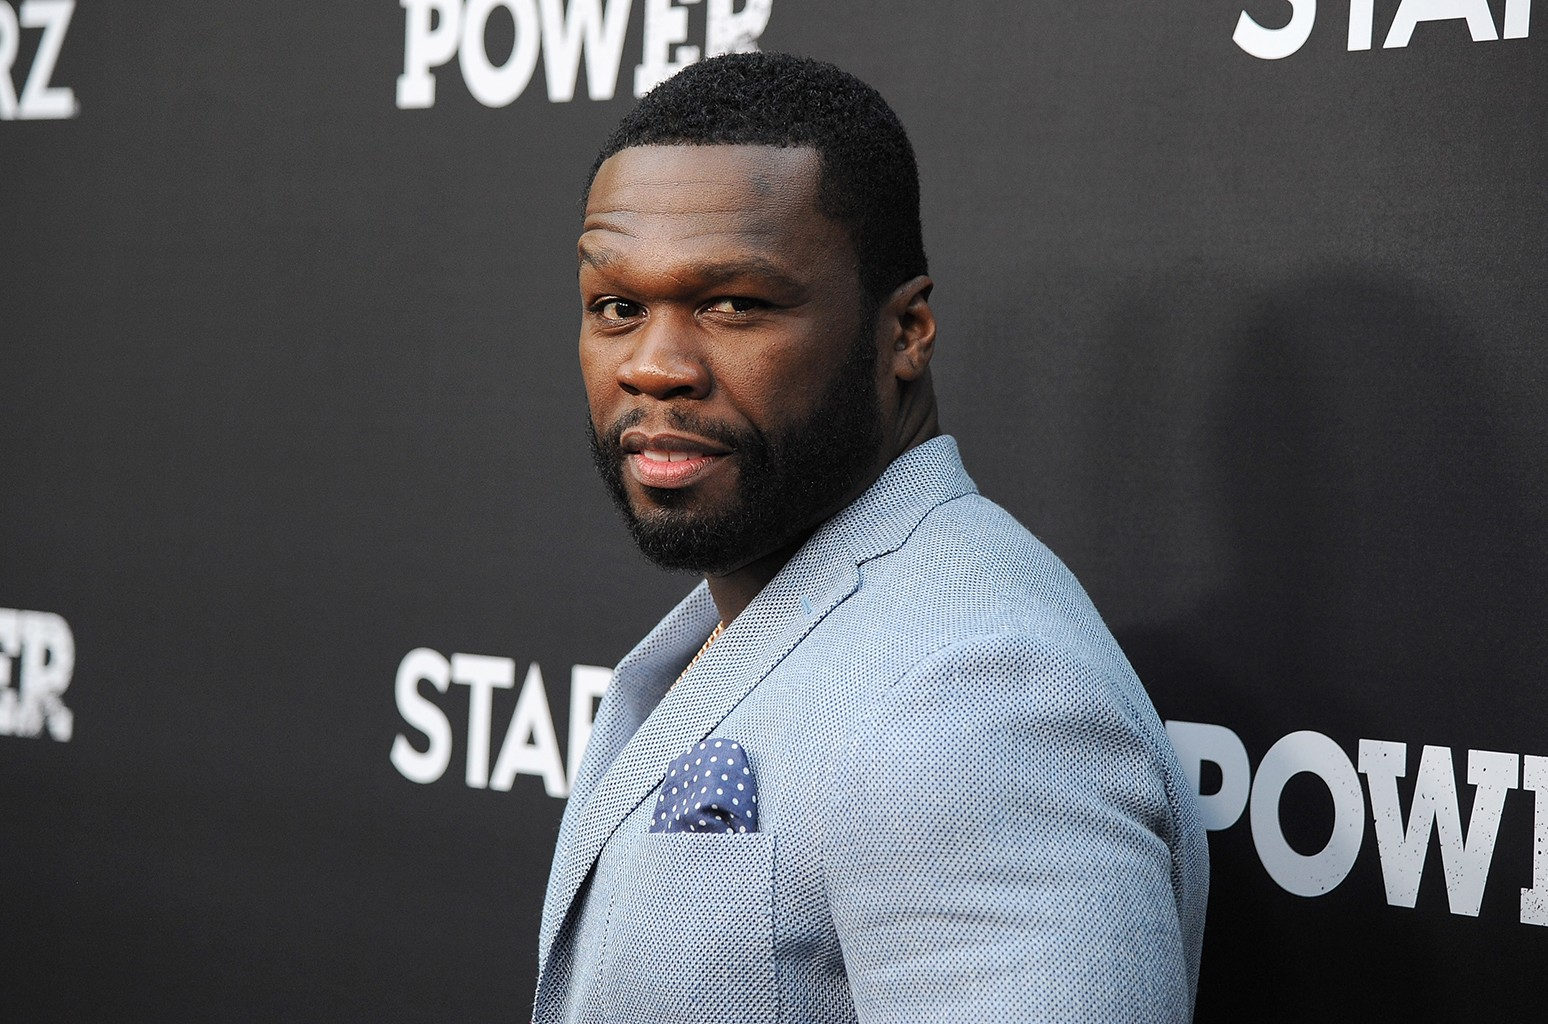 50 Cent Video Porno 50 cent responds to the drake & pusha t battle: 'i'm just